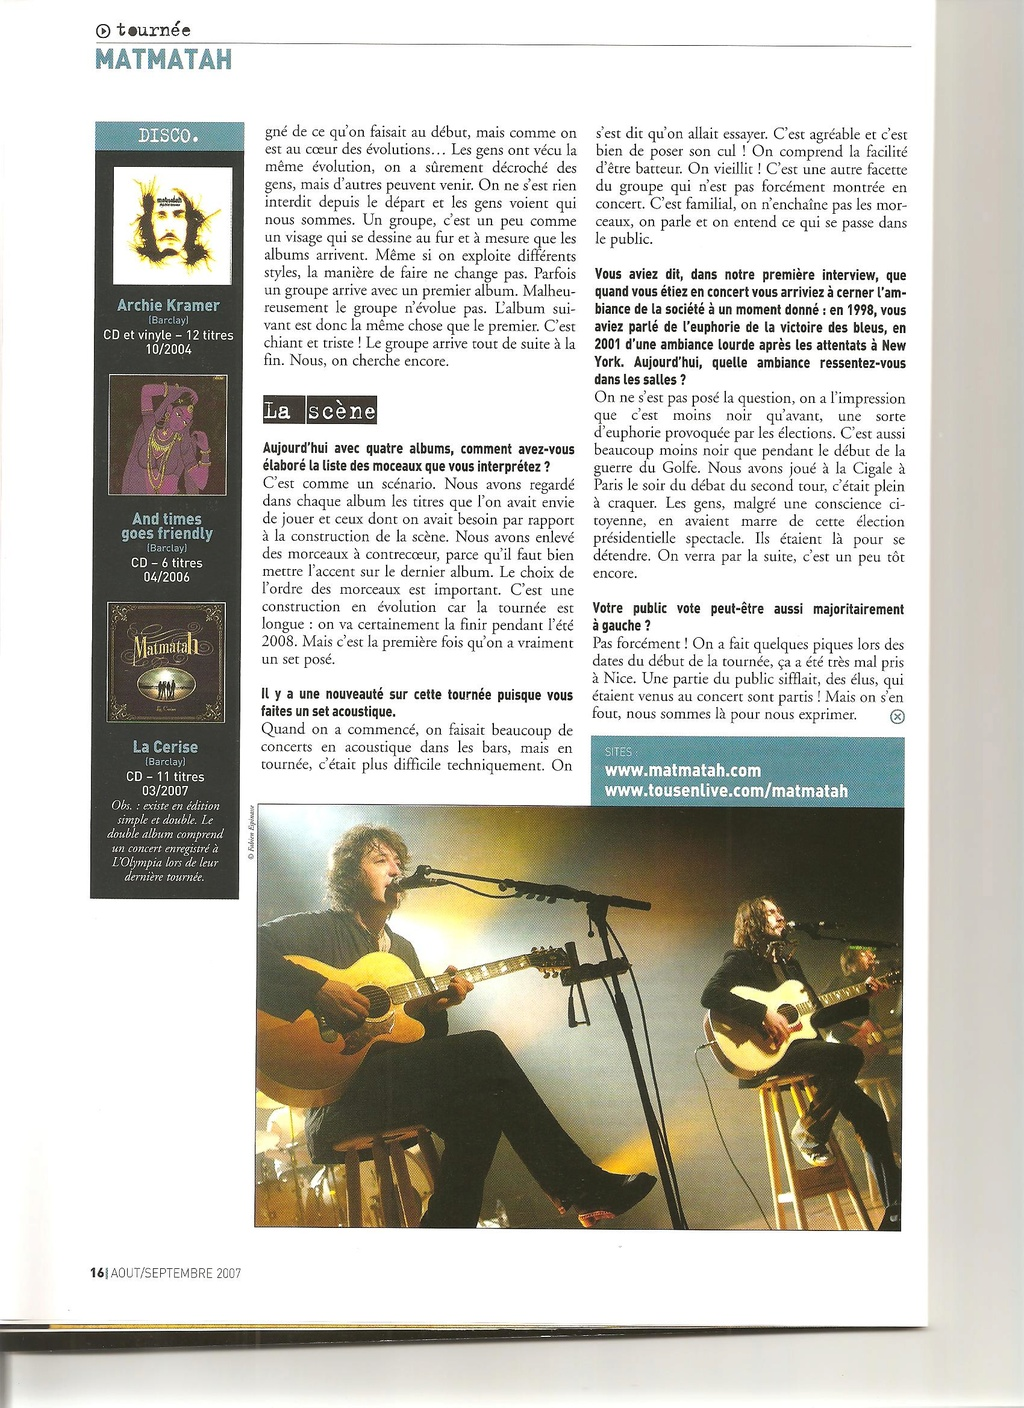 Archives - anciens articles... Franco24